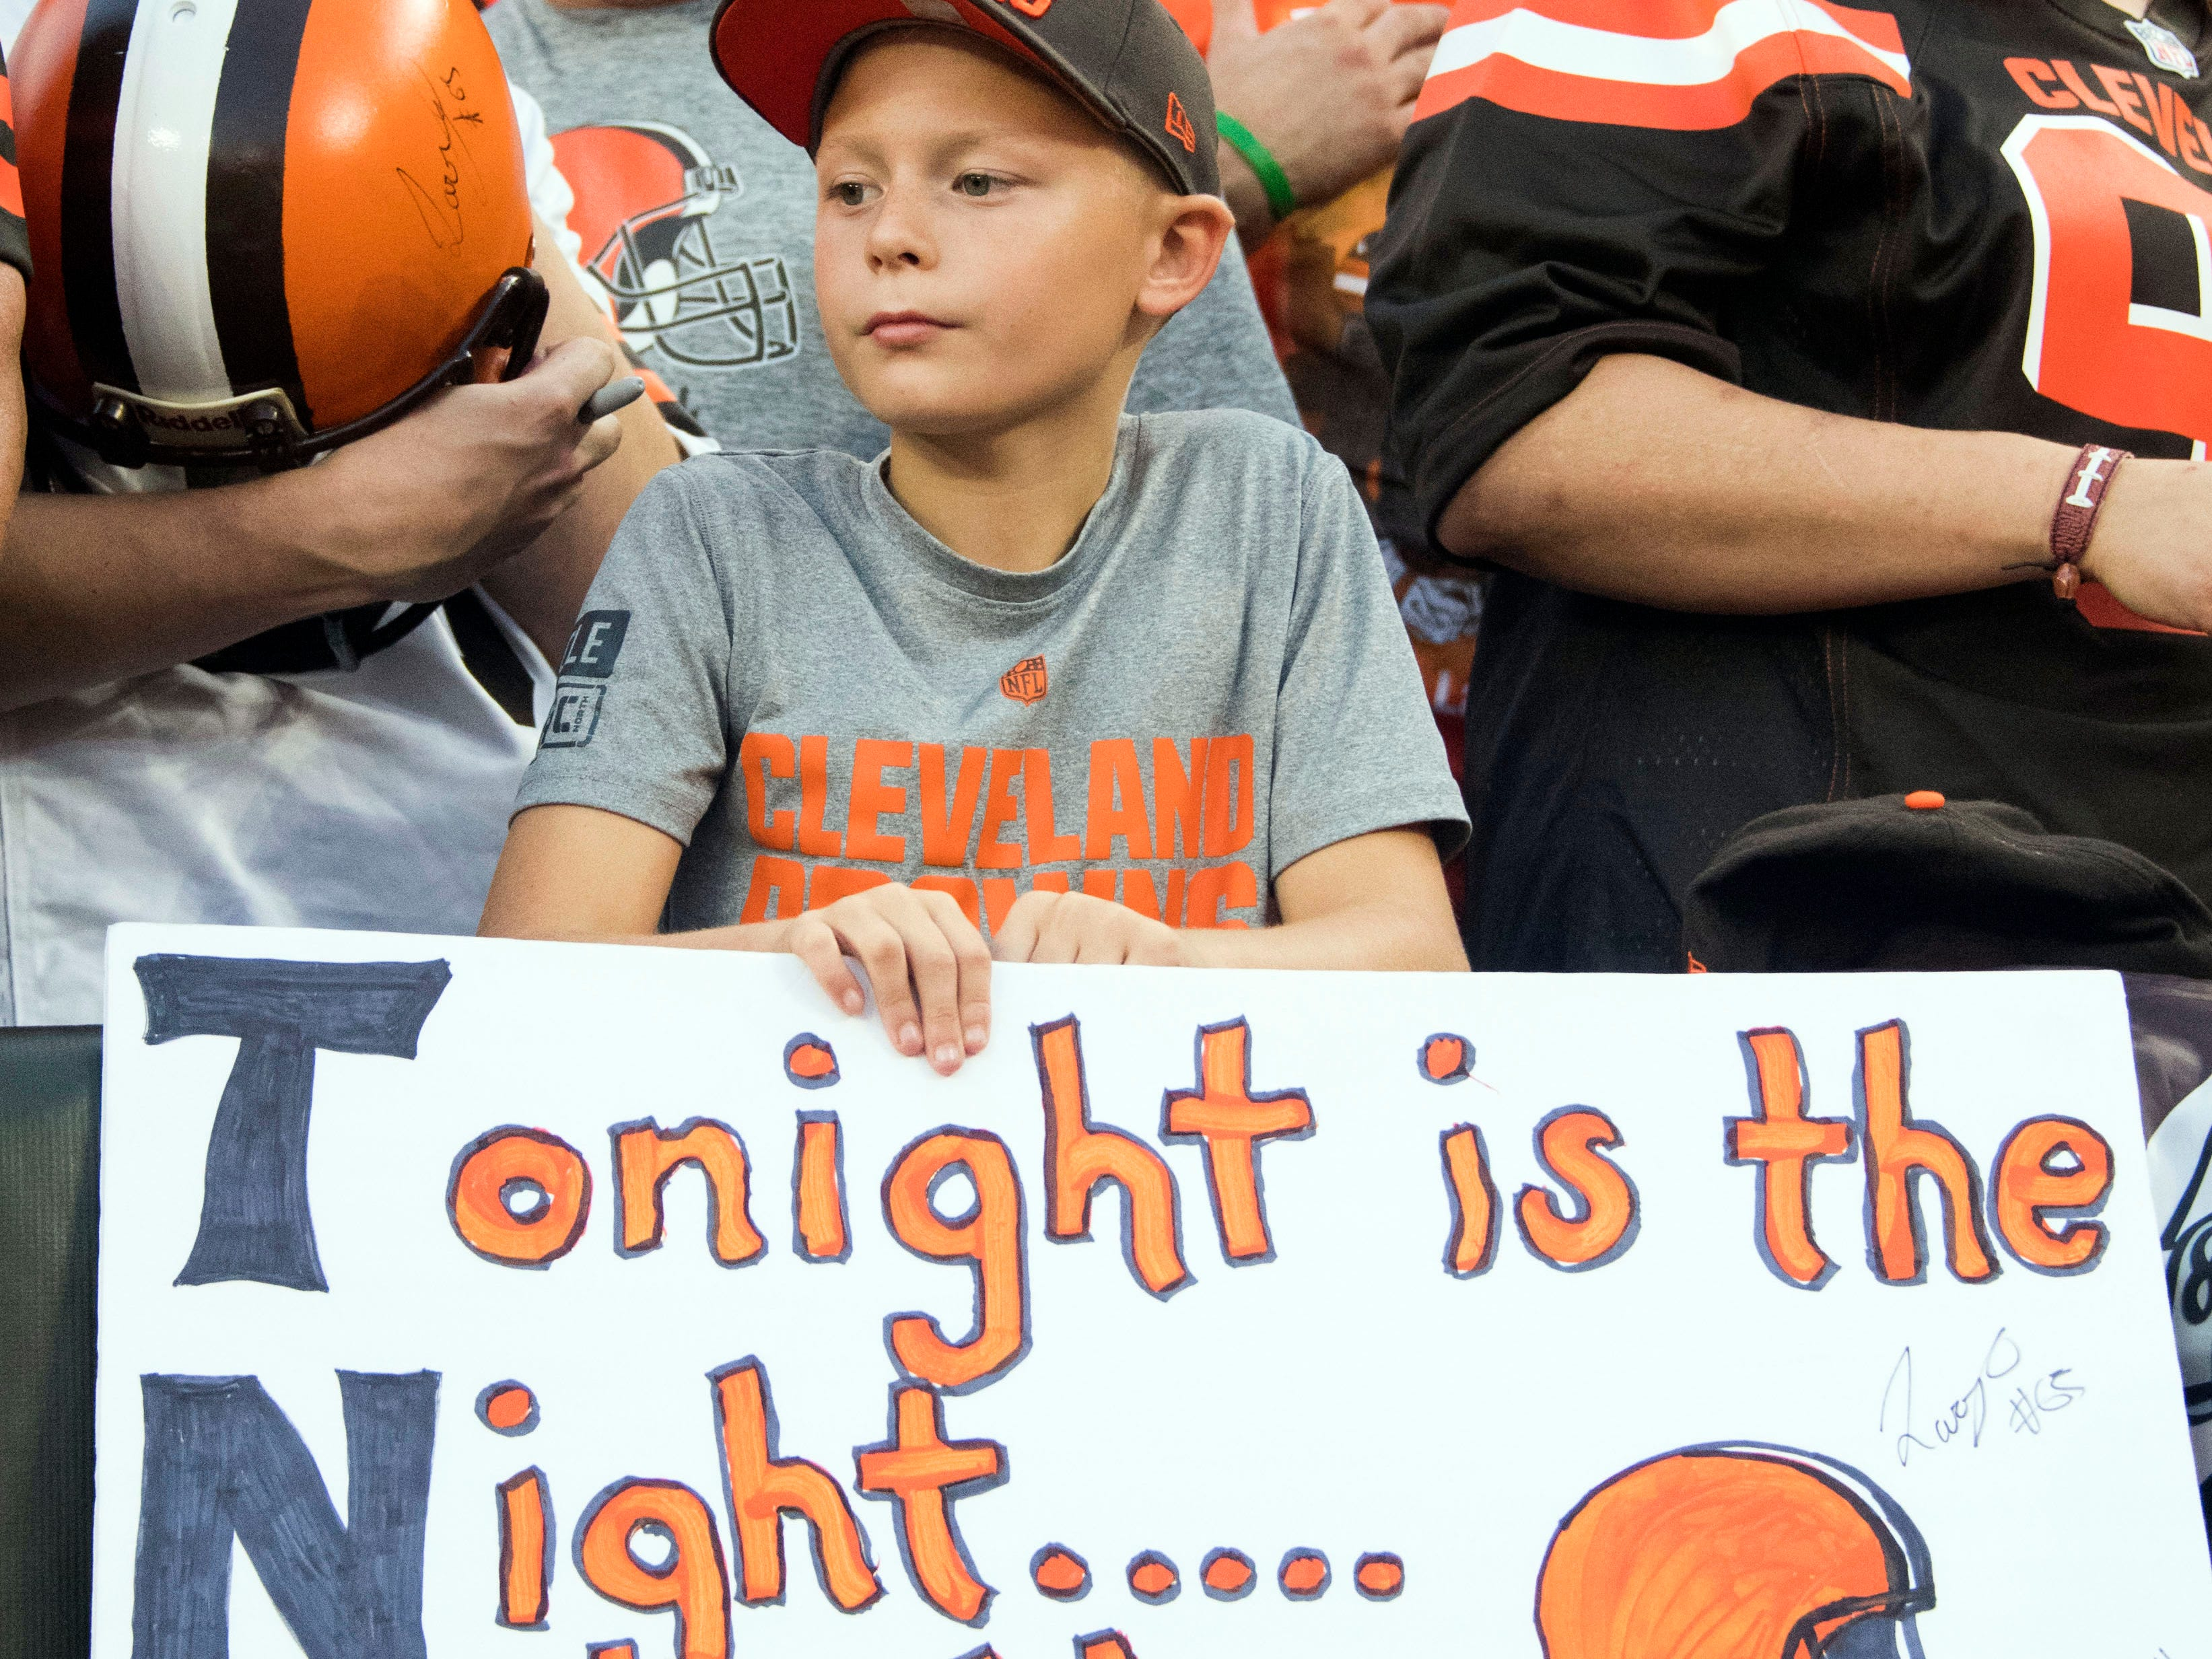 A young Cleveland Browns fan holds a sign referencing the Browns' winless streak and Thursday Night Football before the game between the Cleveland Browns and the New York Jets at FirstEnergy Stadium.